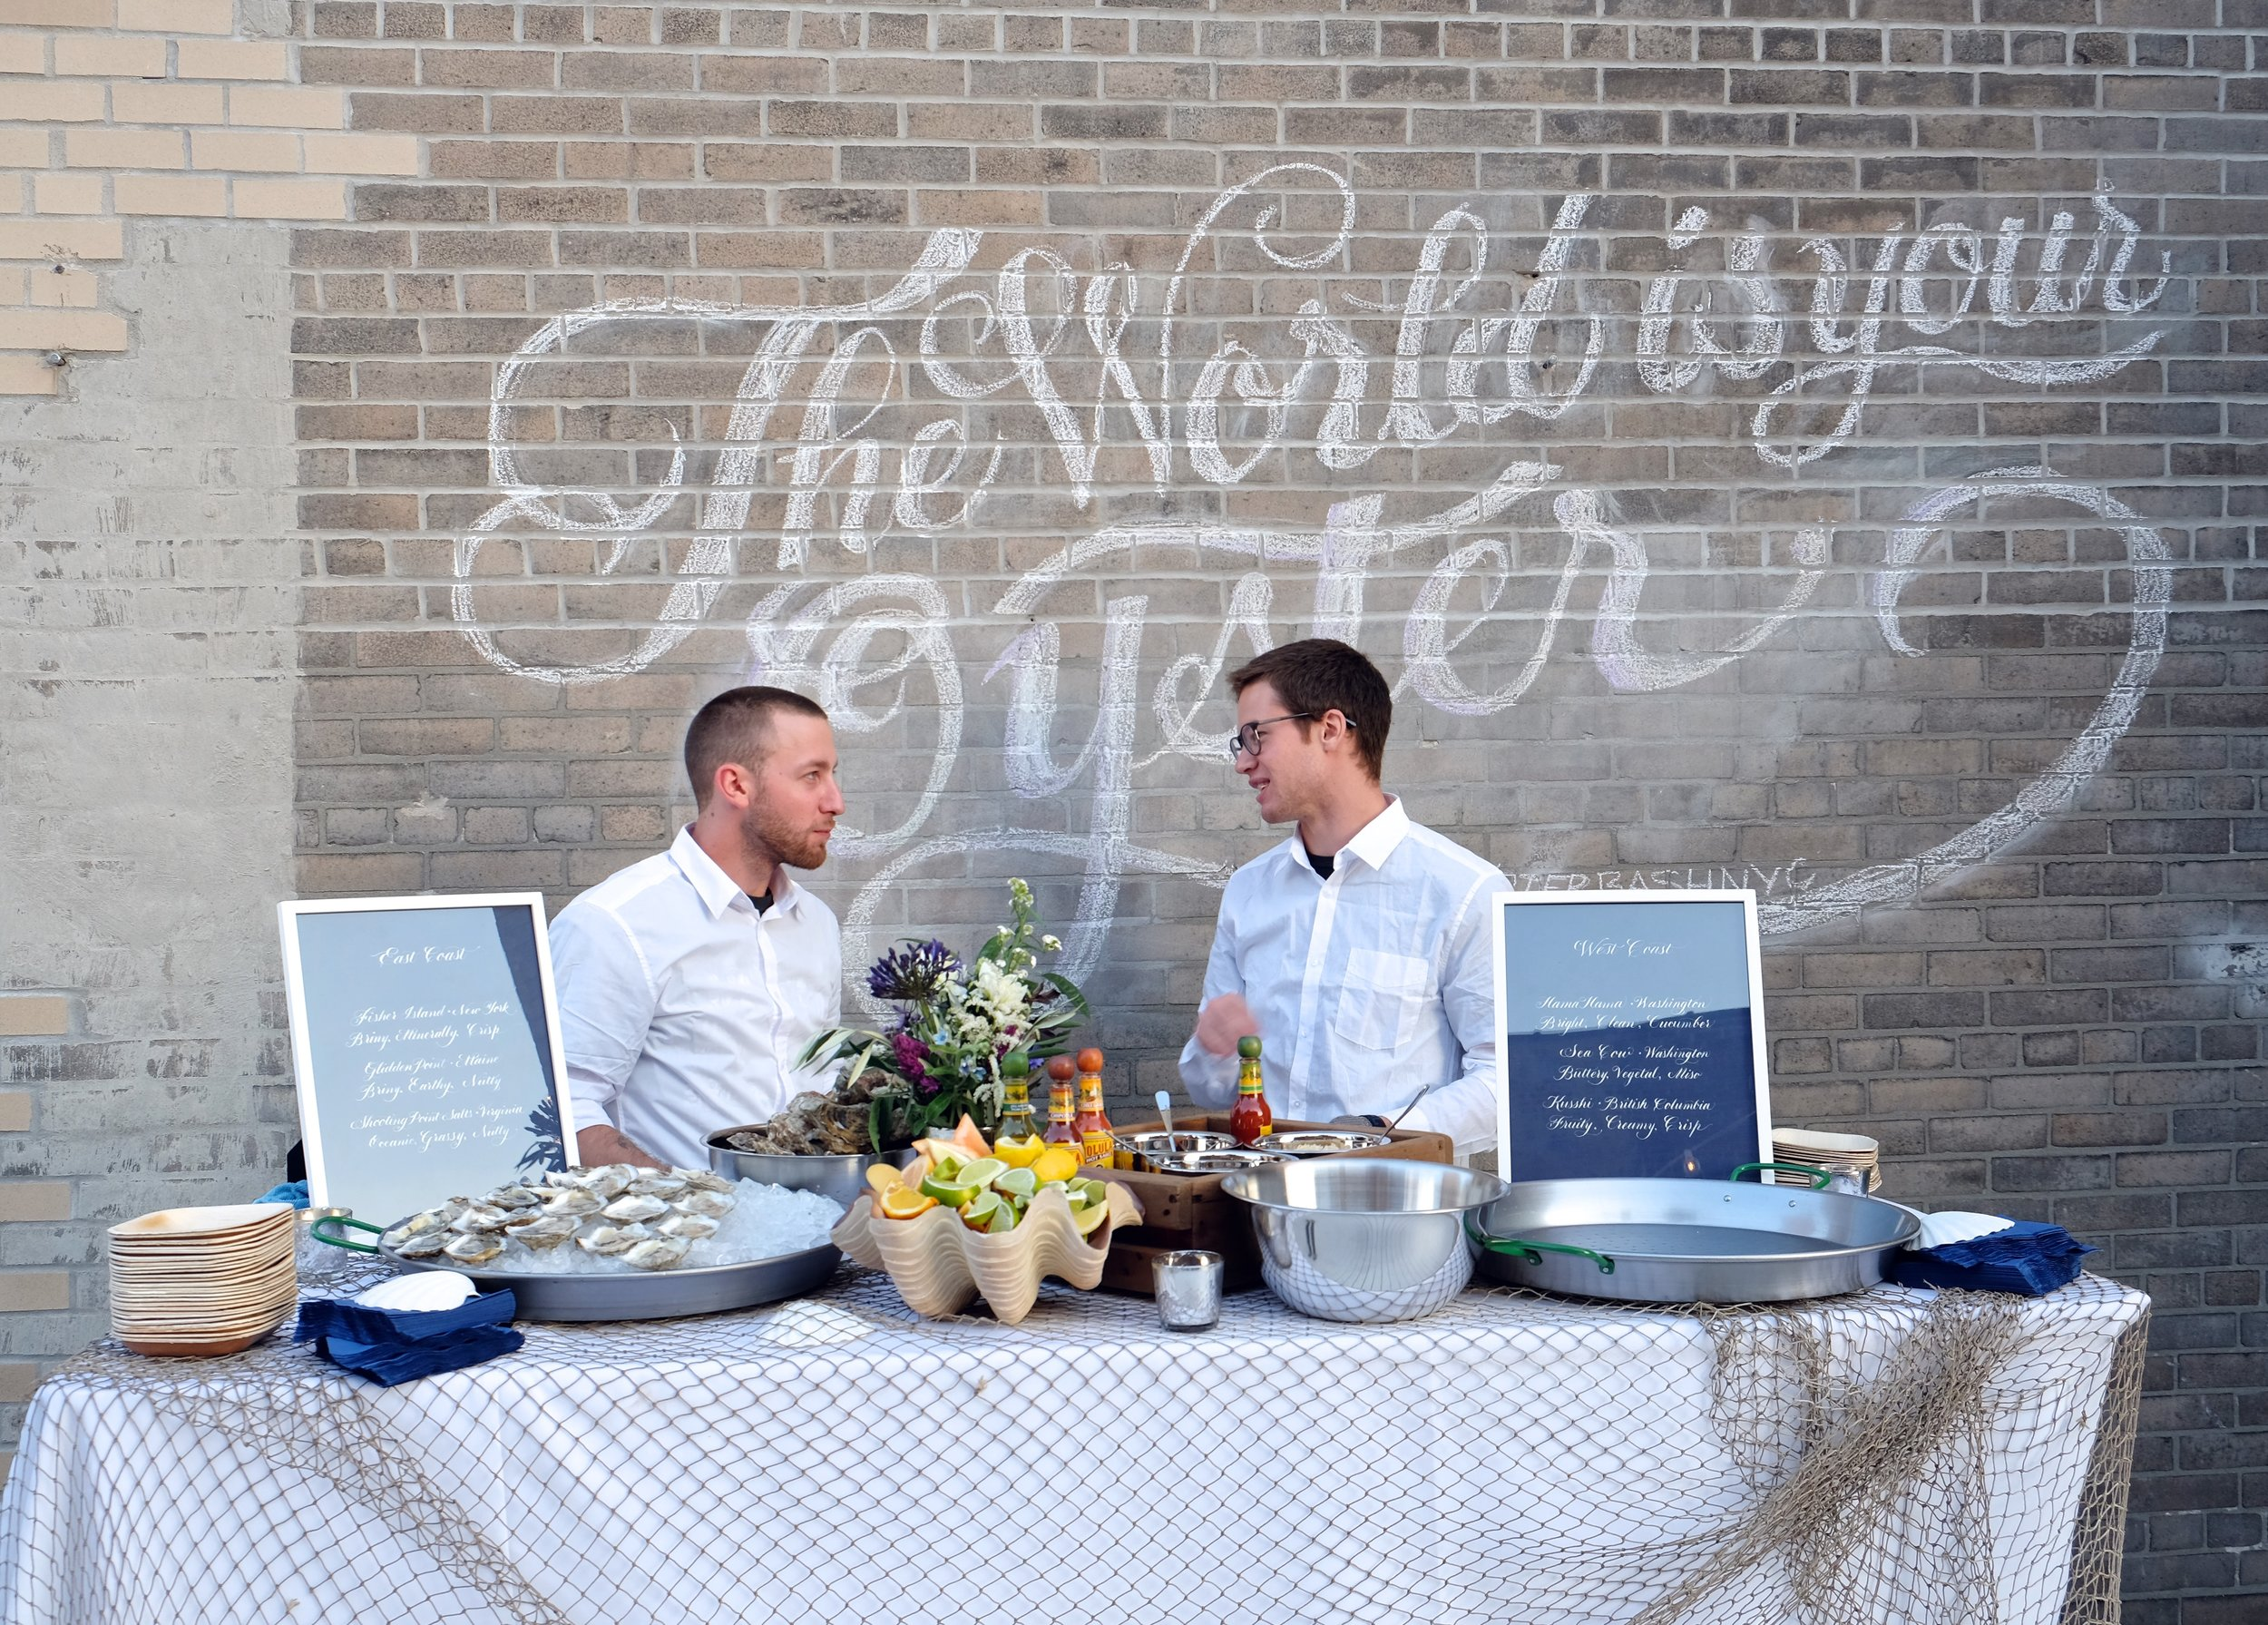 Custom lettering on an outdoor brick wall for Oyster Bash NYC // by Studio Chavelli www.chavelli.com